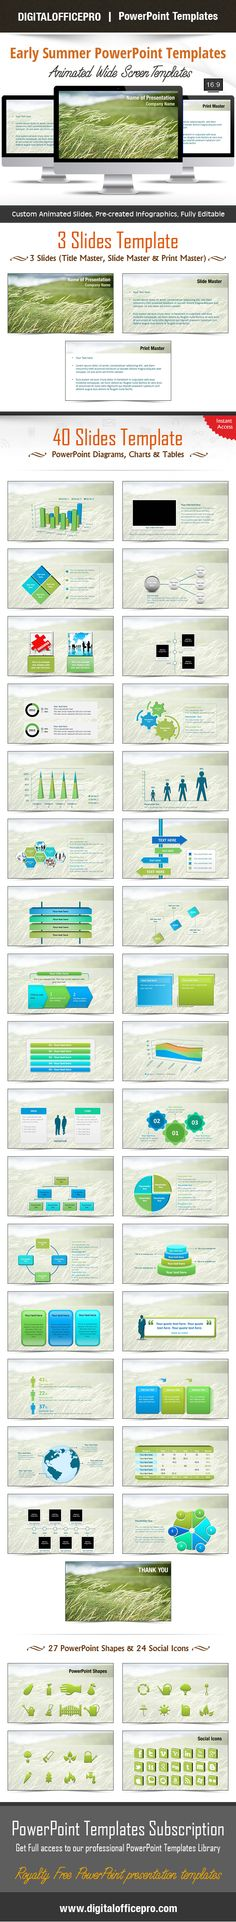 Piano PowerPoint Template Backgrounds Piano, Shape and Set of - summer powerpoint template